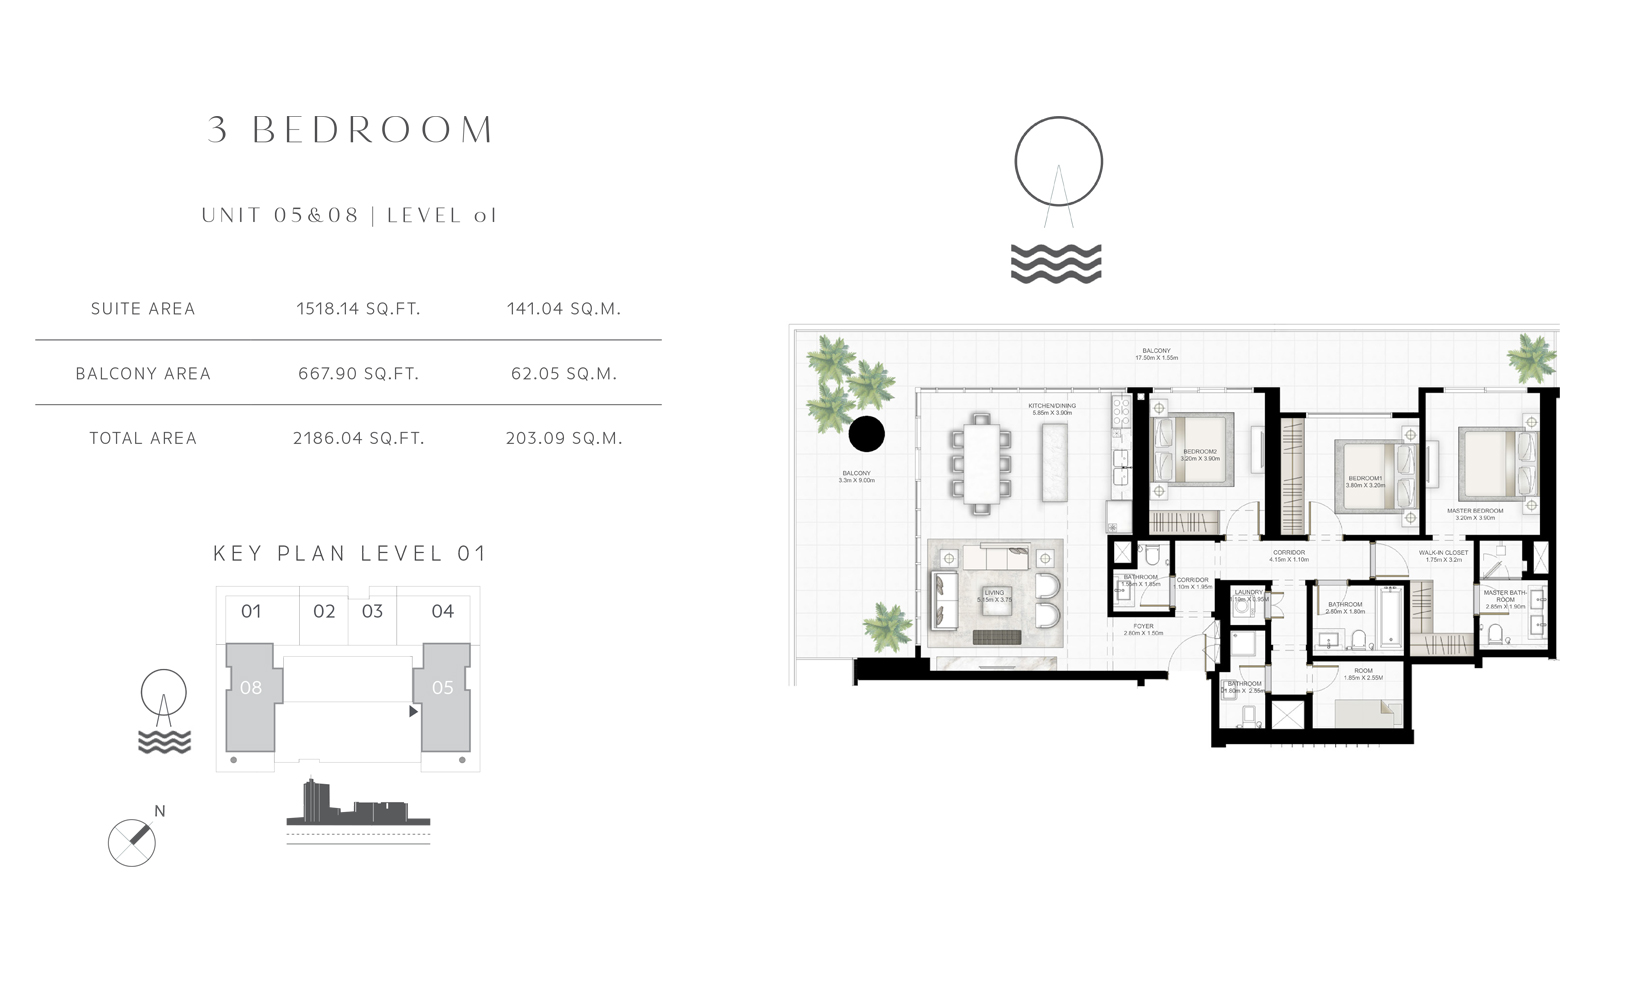 3 Bedroom Unit 05-08 Level  01 Size 2186.04 sq.ft